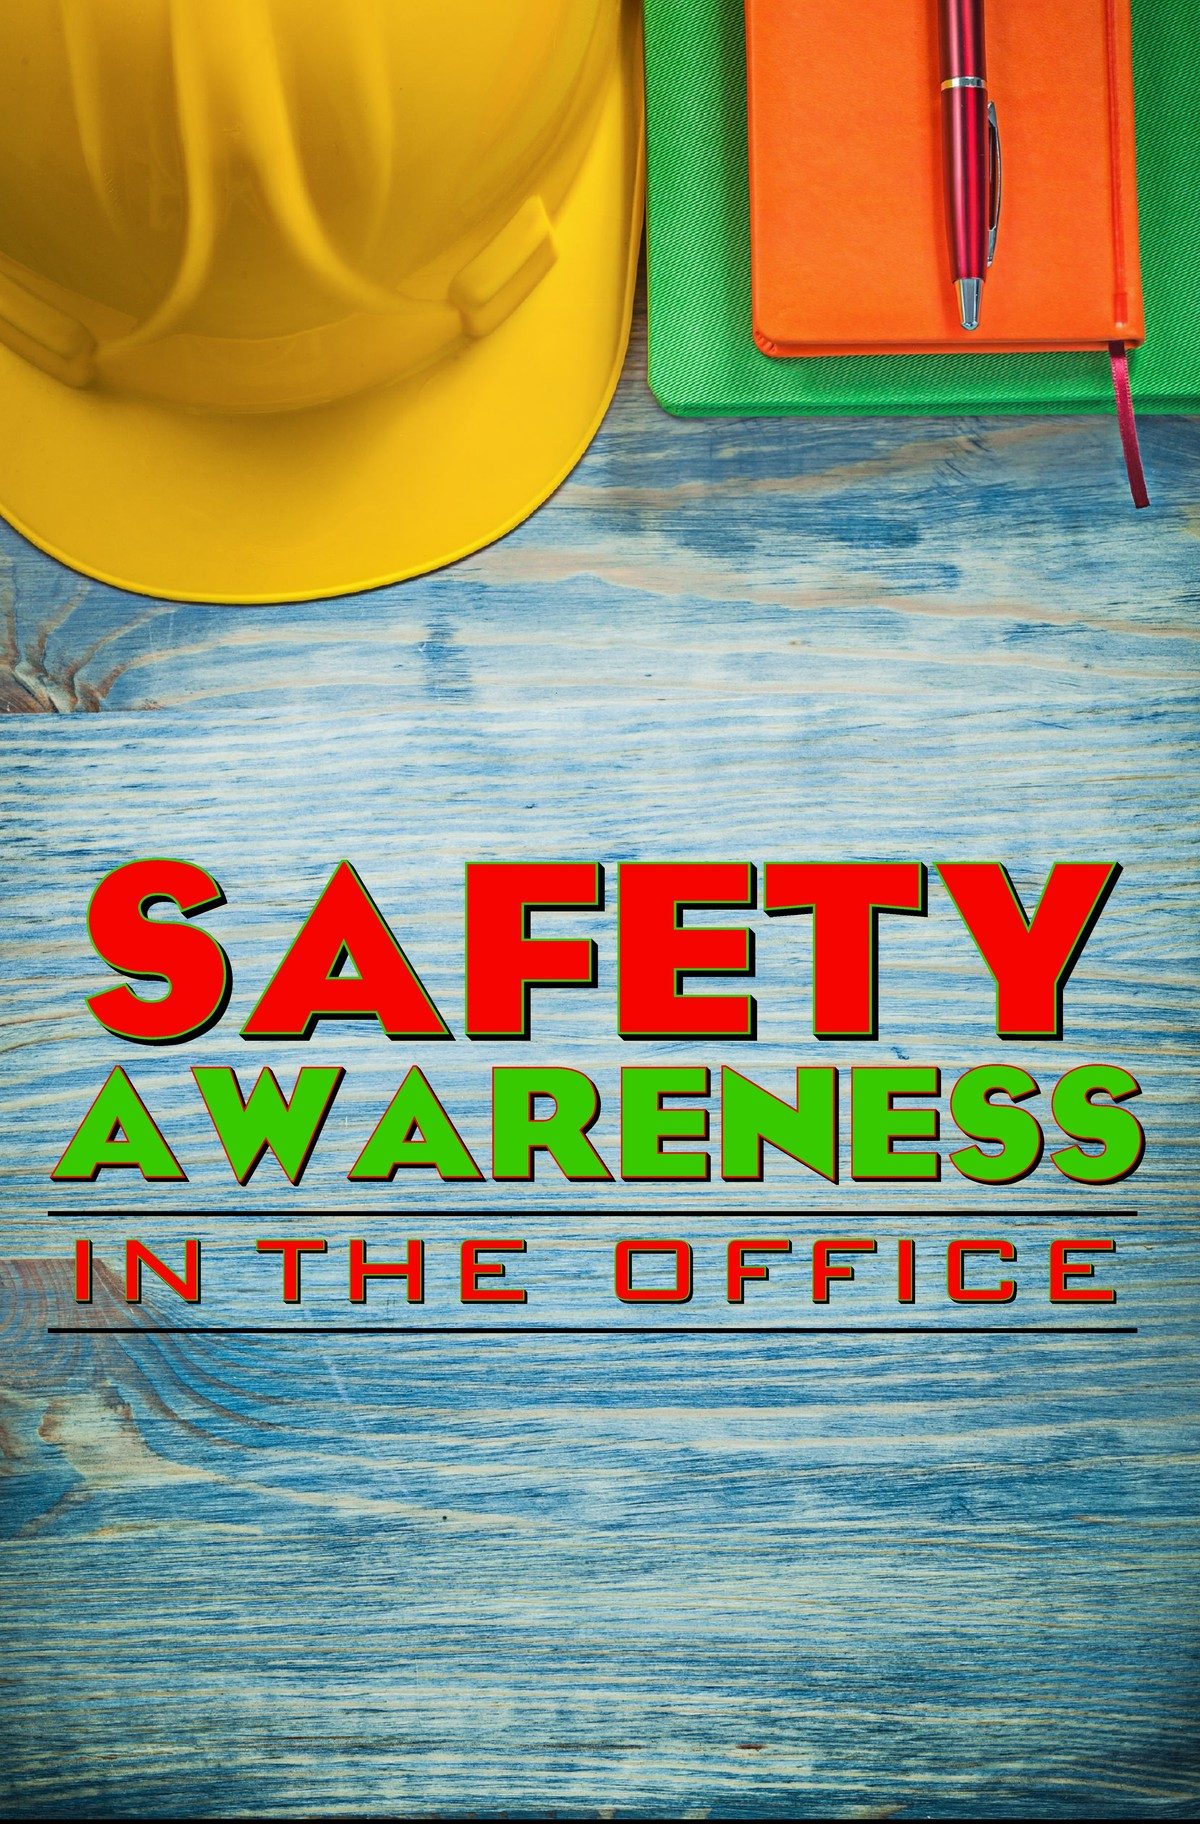 L7024 - Safety Awareness in the Office